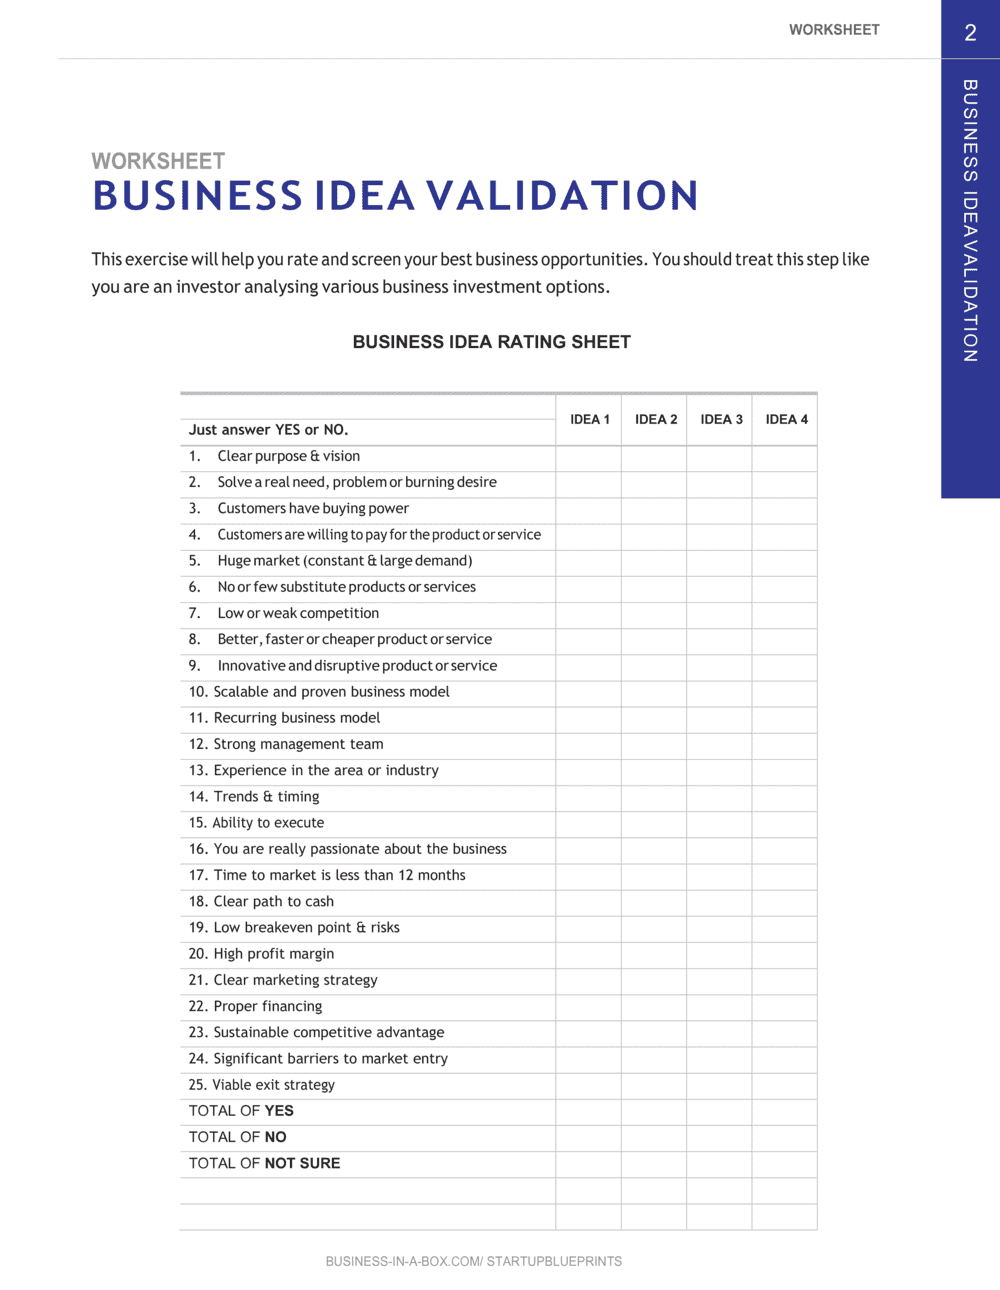 Business-in-a-Box's Business Idea Validation_startup Blueprints_chapter 2 Worksheet Template